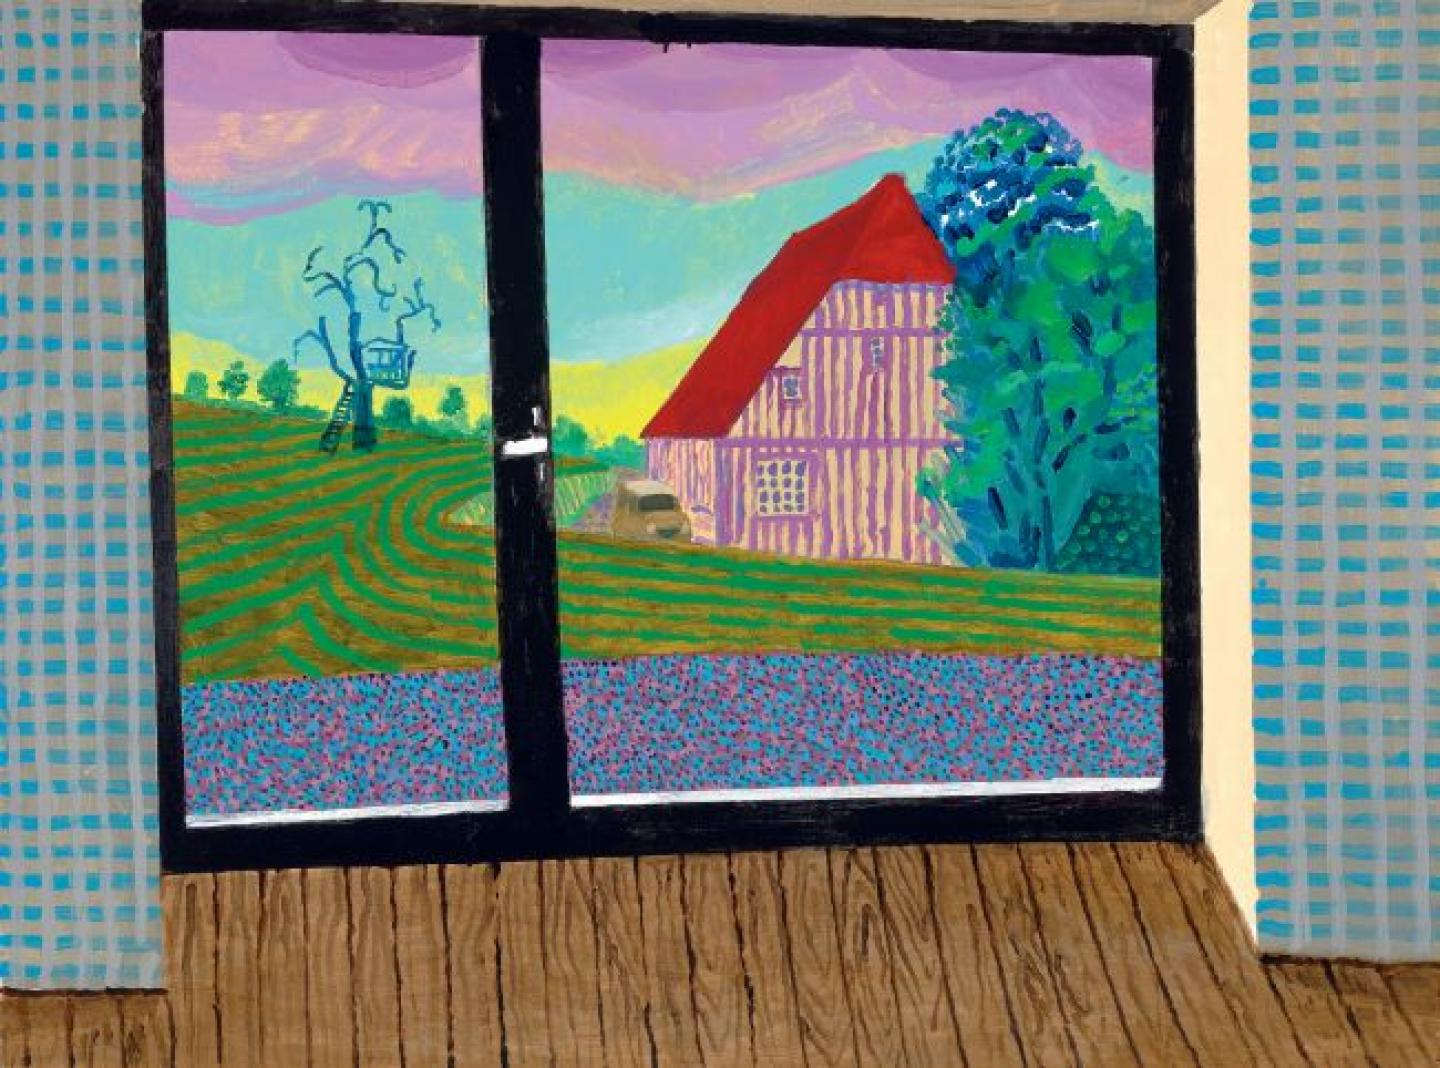 View From The Studio At Dawn II,  David Hockney, Acrylique sur toile, 201991 x 122 cm,  ©Galerie Lelong & Co